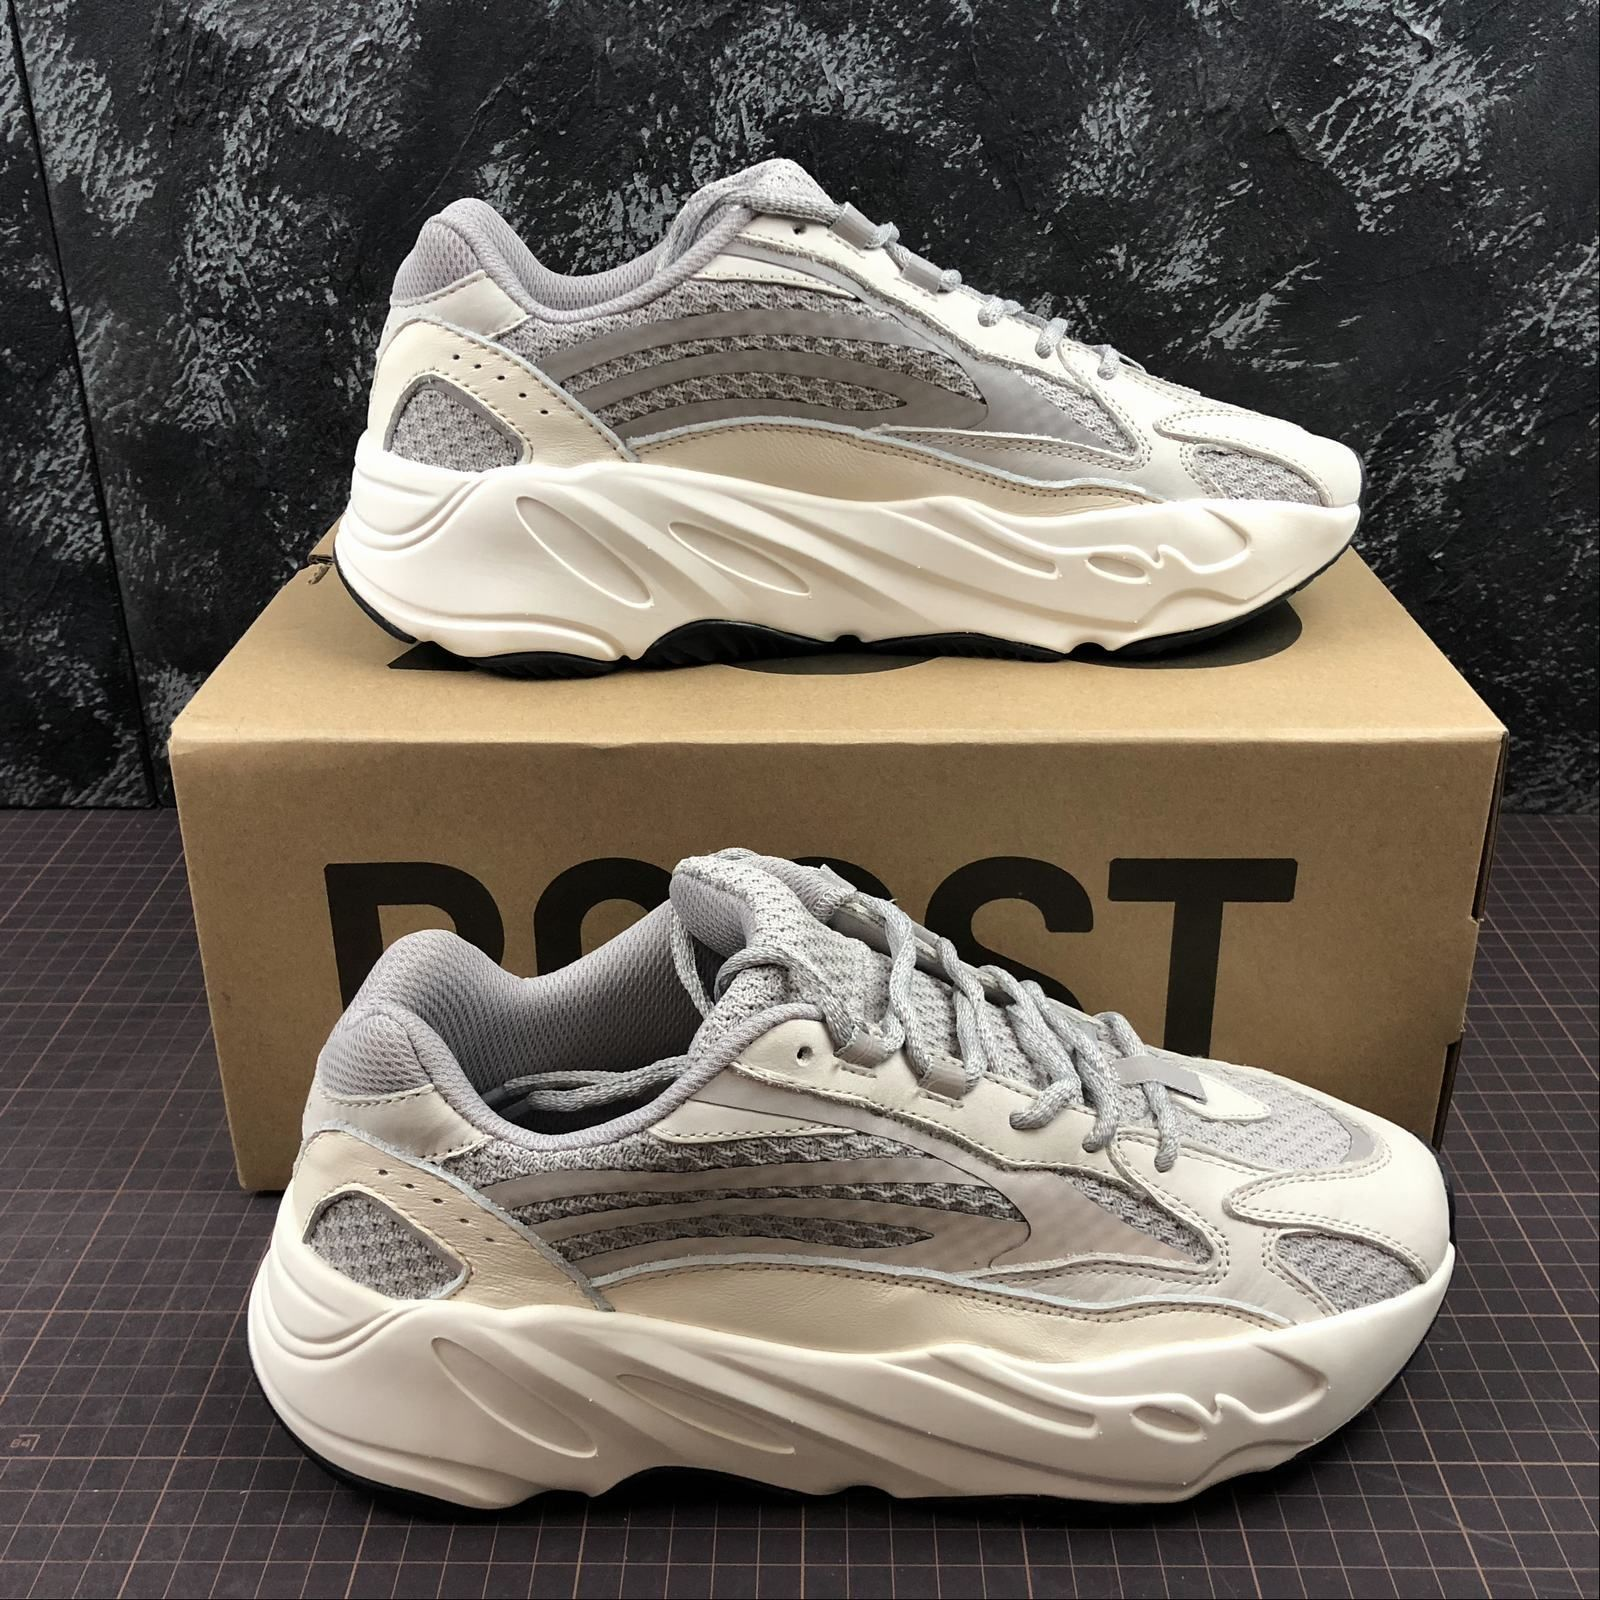 54b72408f4910 Adidas Yeezy 700 Wave Runner v2 Static  EF2829 in 2019